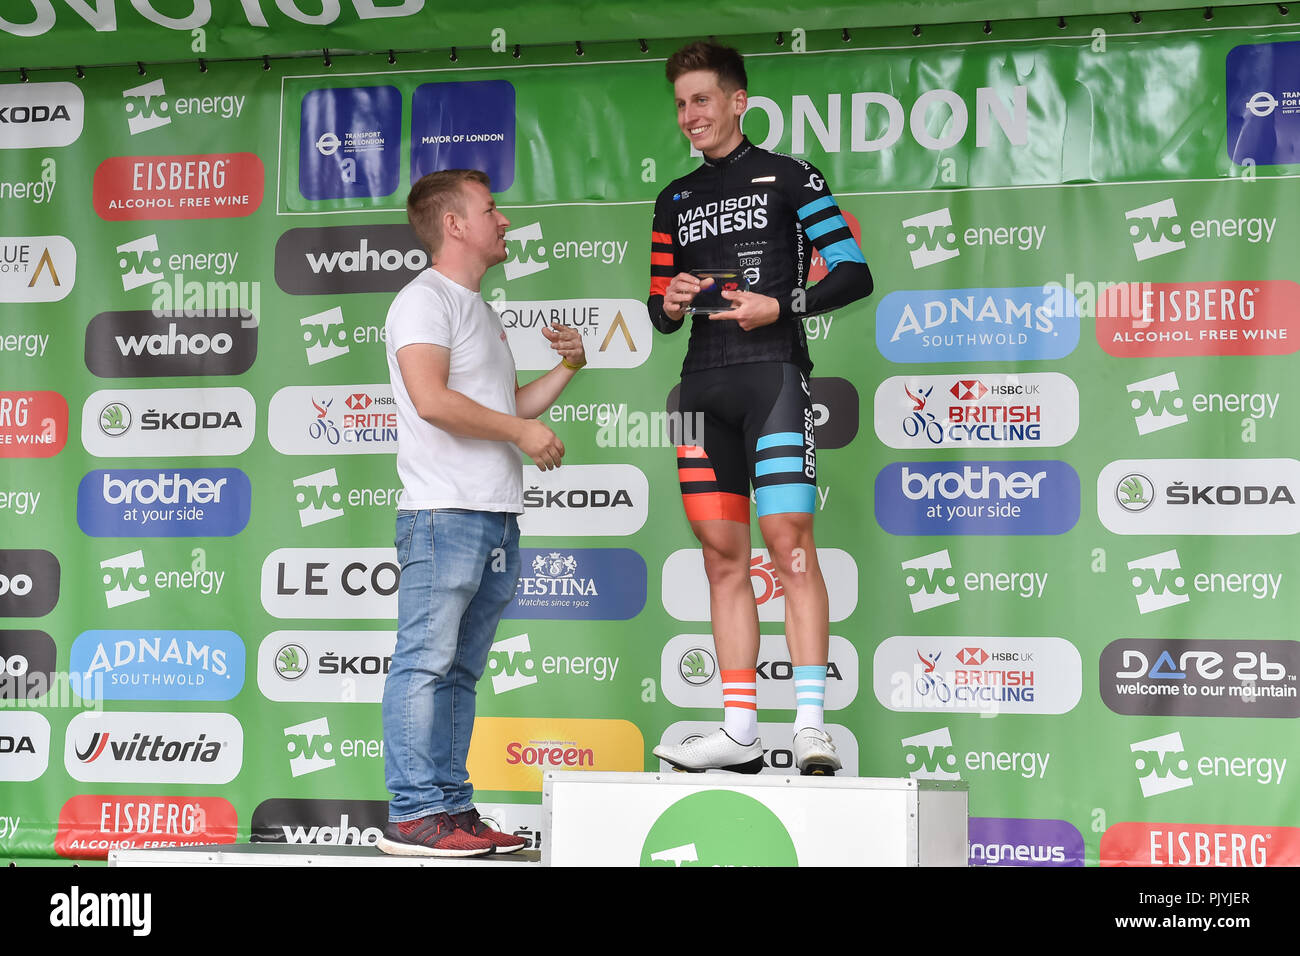 London, UK. 09th Sep, 2018. Matthew Holmes of Madison Genesis won the High5 Overall Combativity Award at Winner's Presentation during 2018 OVO Energy Tour of Britain - Stage Eight: The London Stage on Sunday, September 09, 2018, LONDON ENGLAND: Credit: Taka Wu/Alamy Live News - Stock Image